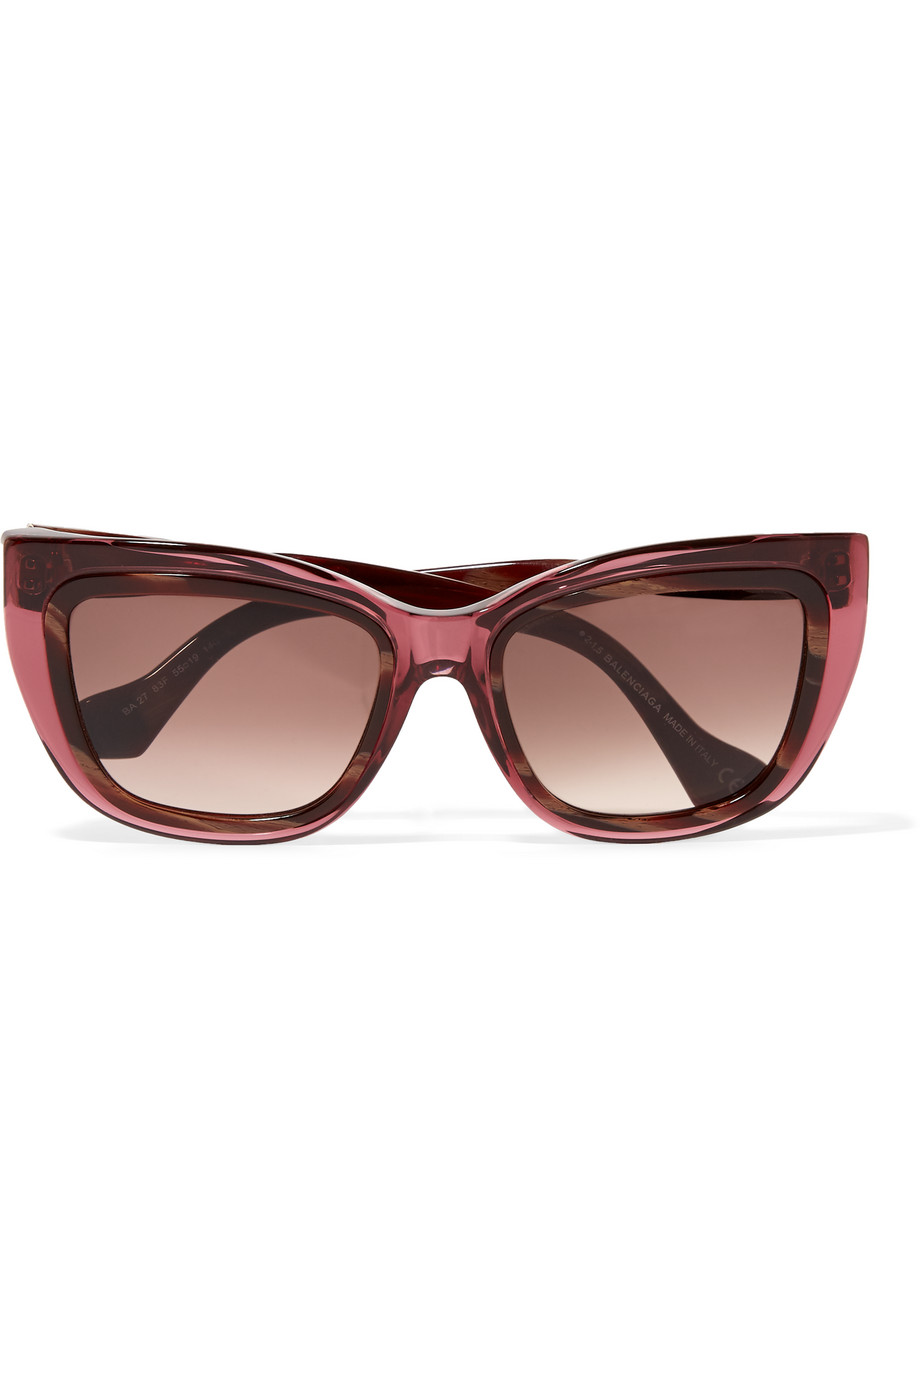 Balenciaga Square-Frame Acetate and Enamel Sunglasses, Burgundy, Women's, Size: One size